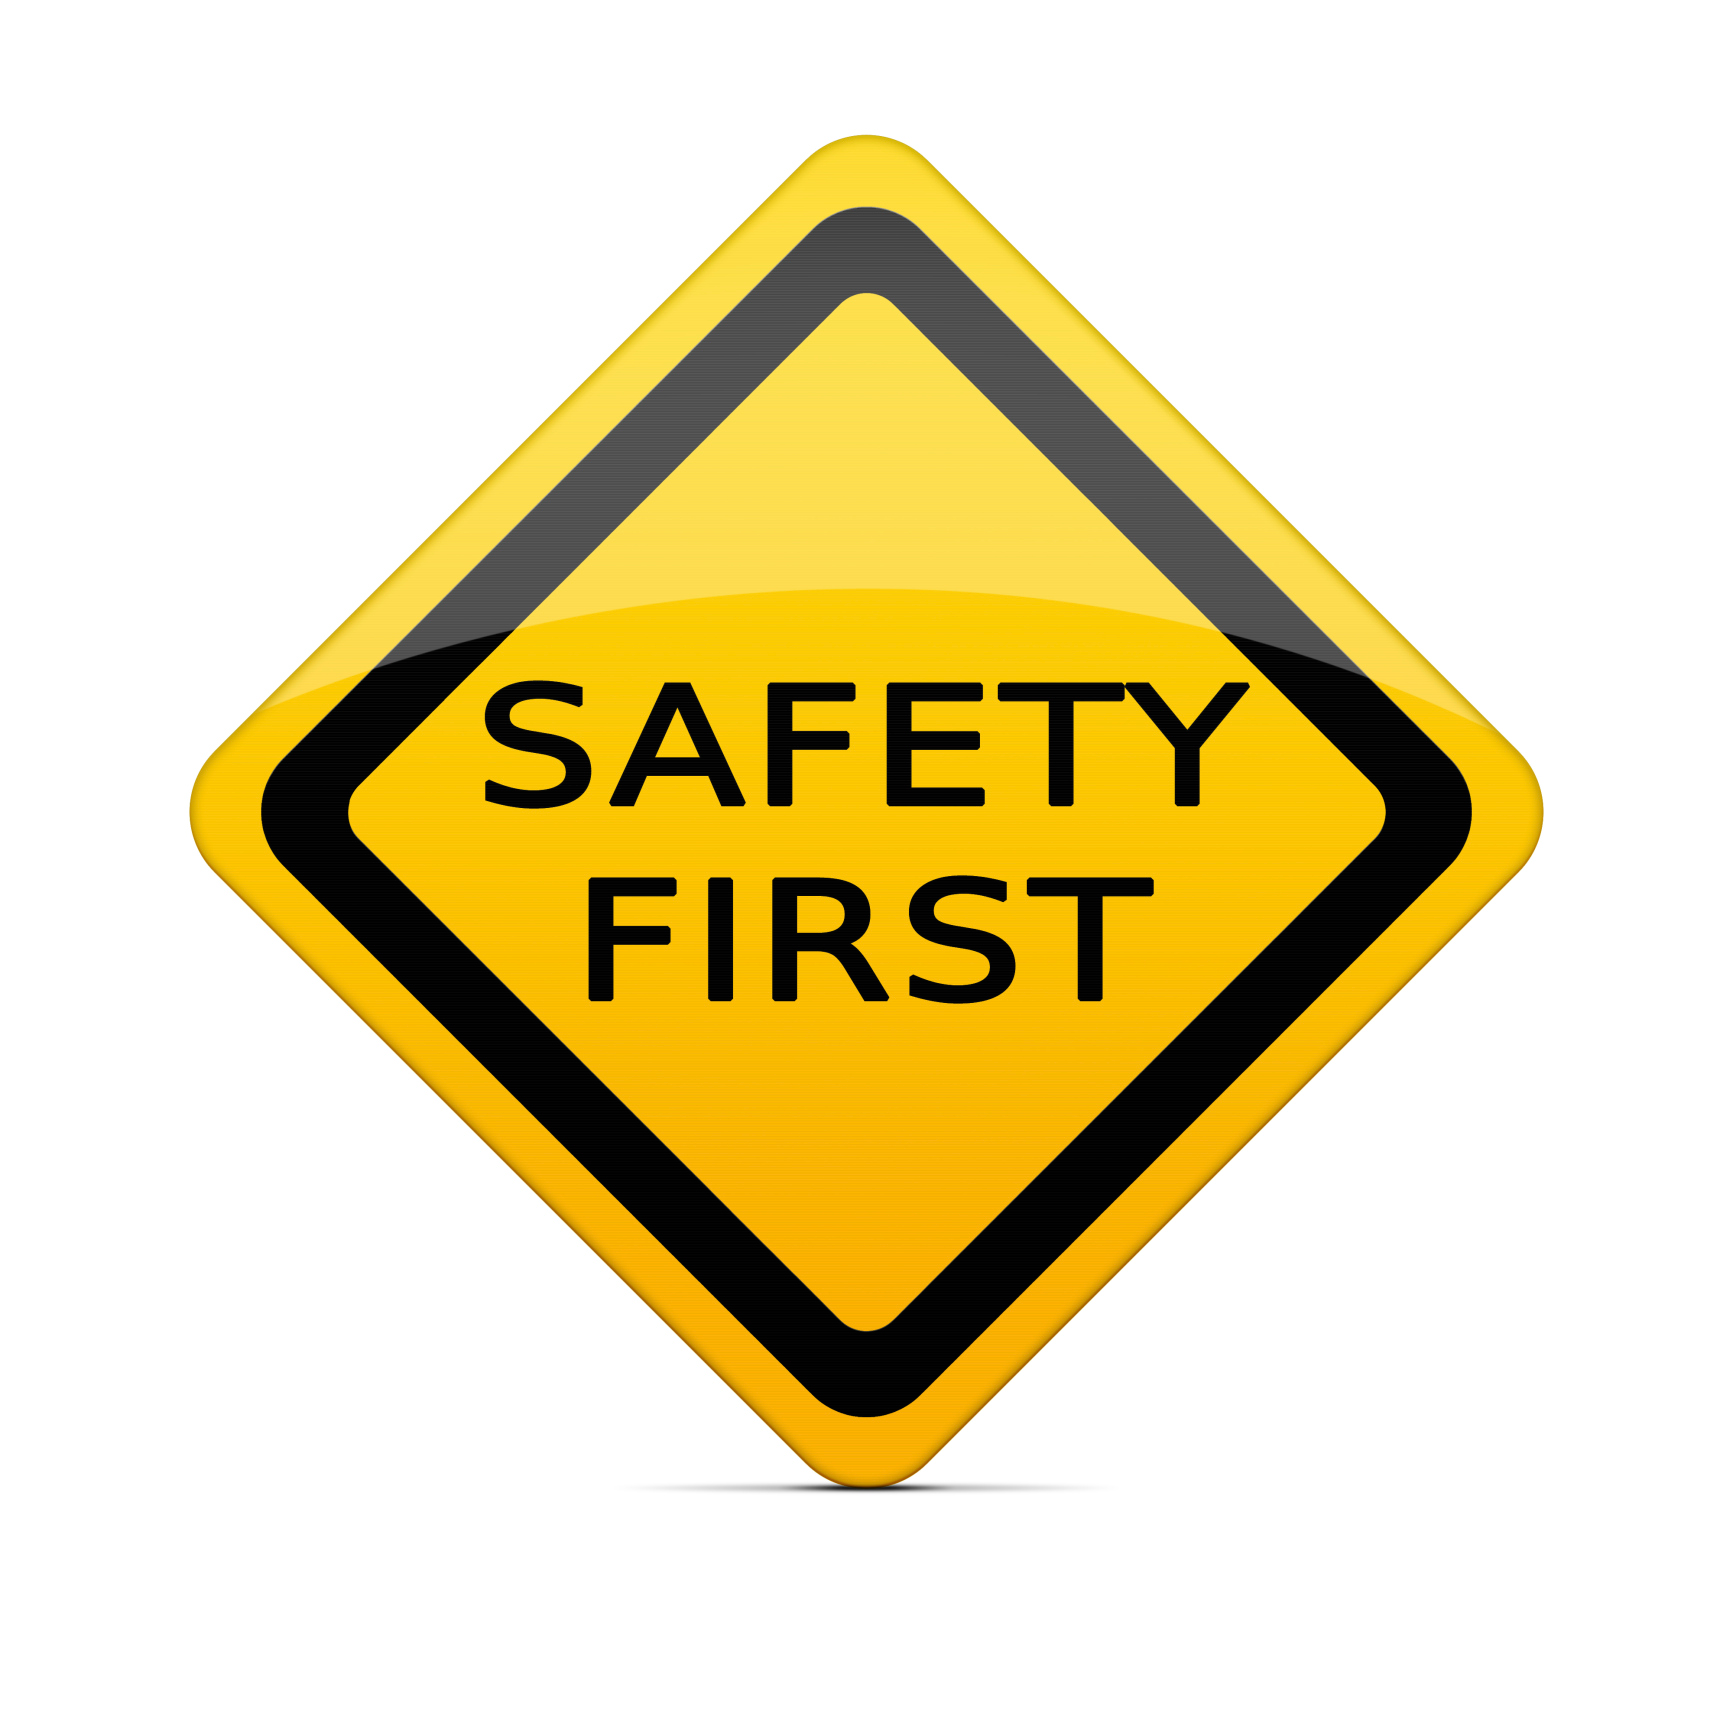 Safety First Clipart - Clipart Kid